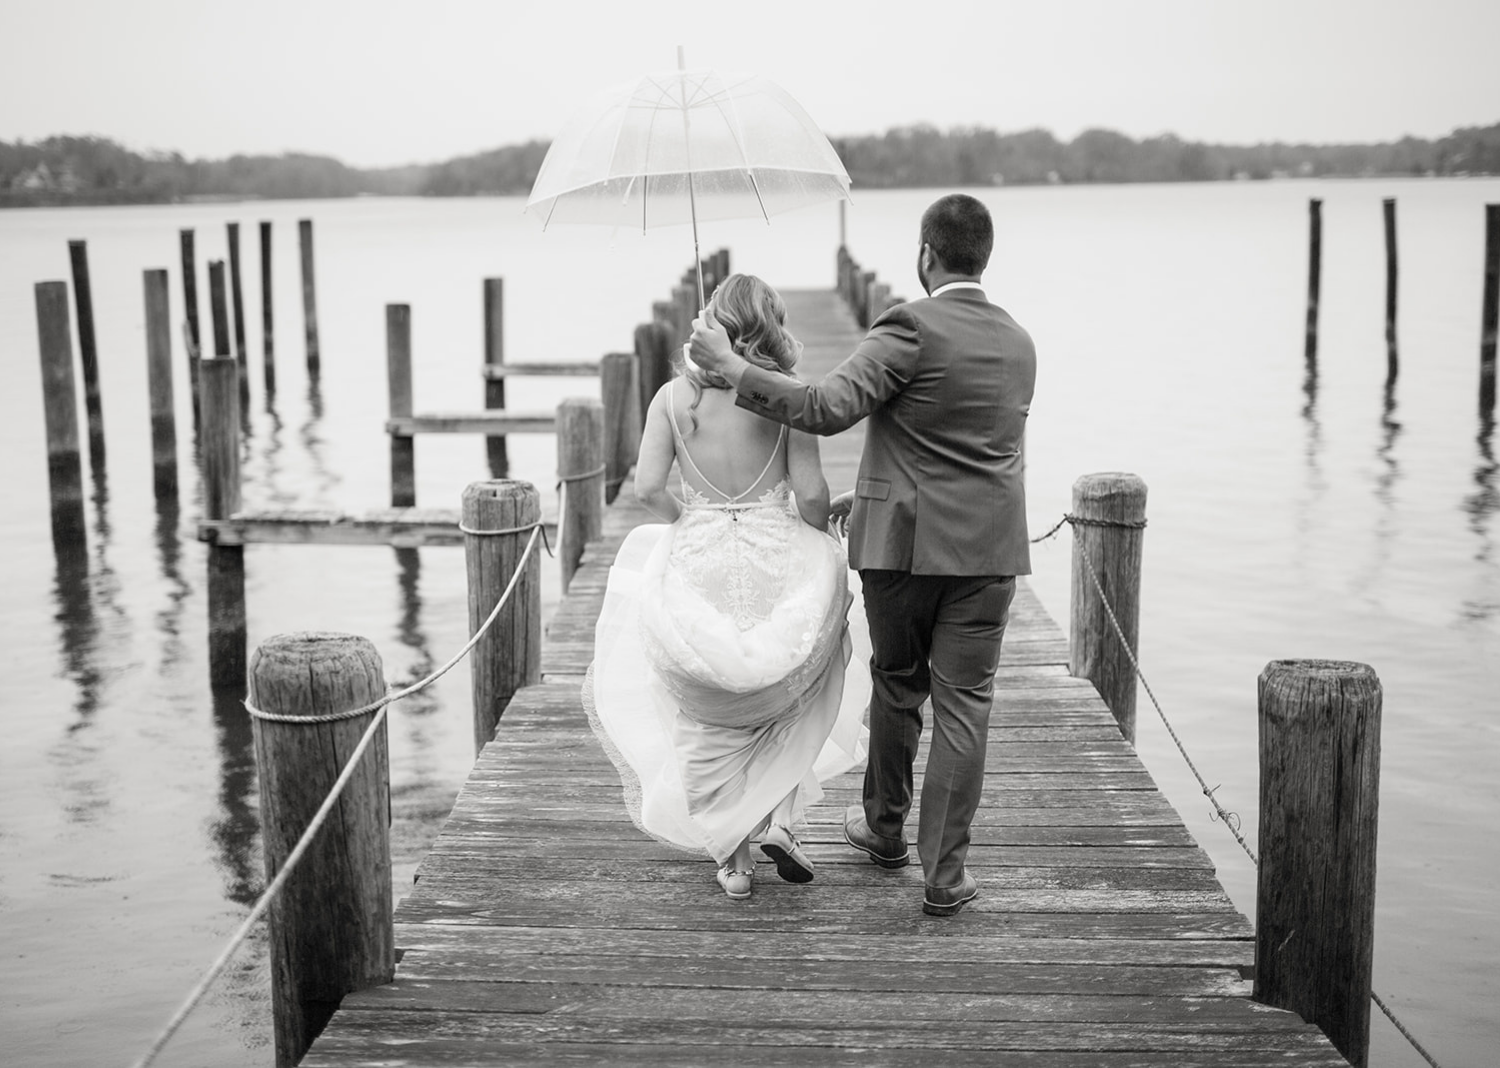 black and white portrait of the bride and groom holding the umbrella as it rains